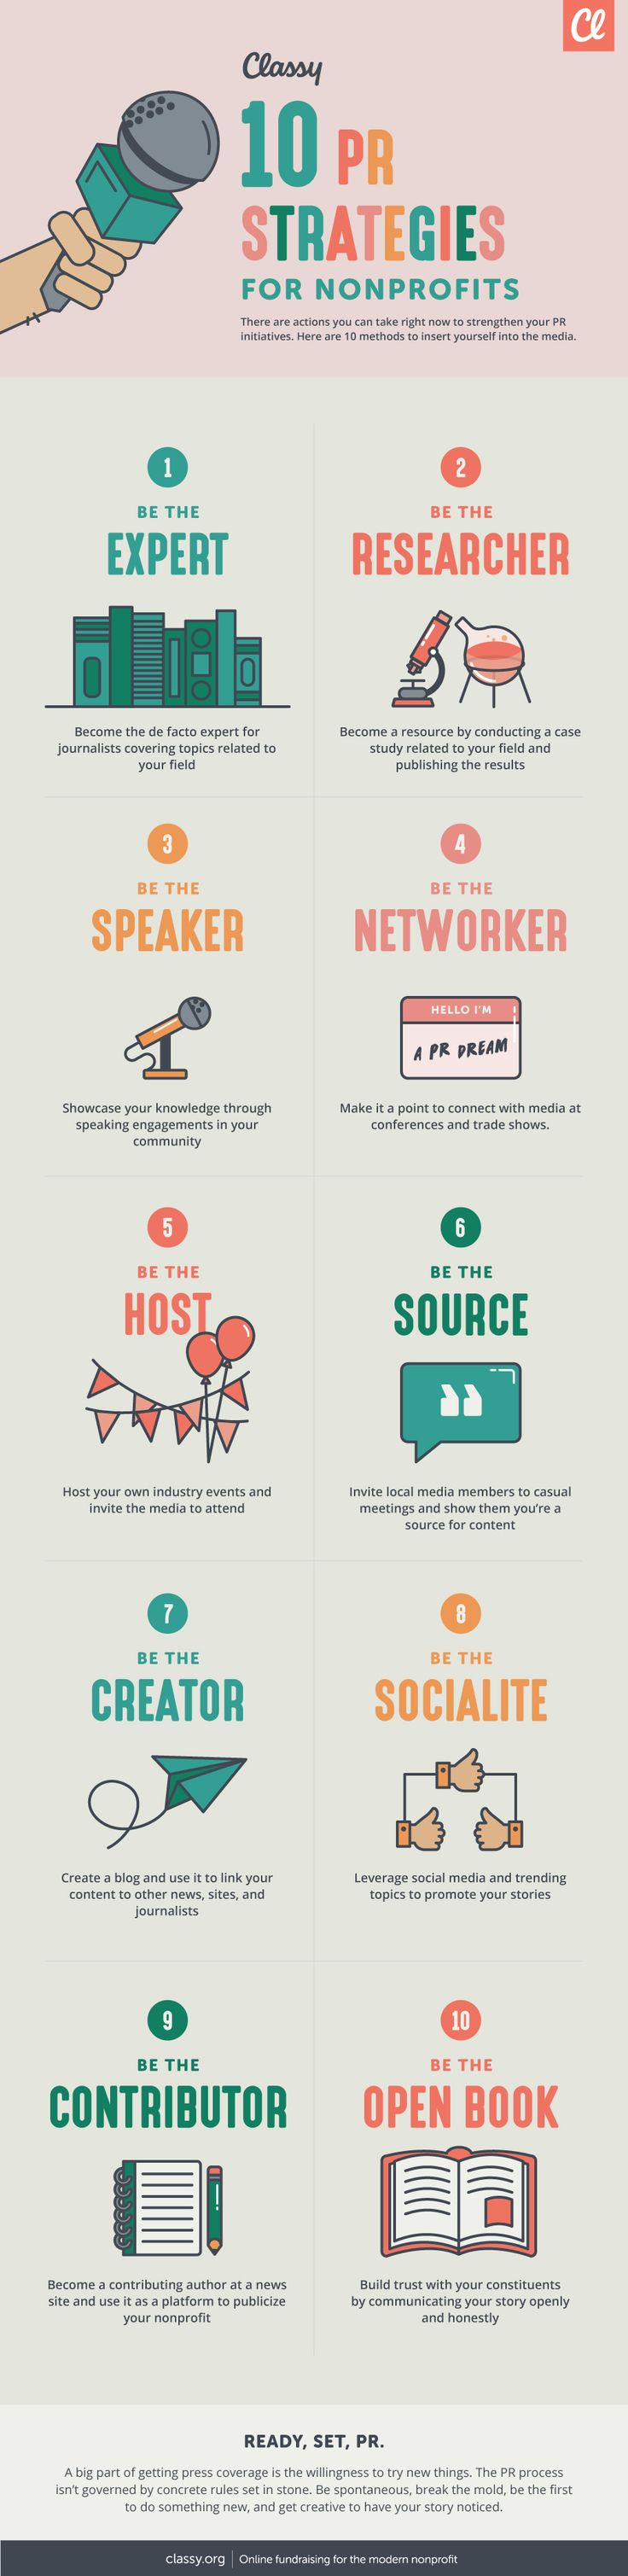 10 PR Strategies for Your Nonprofit Infographic